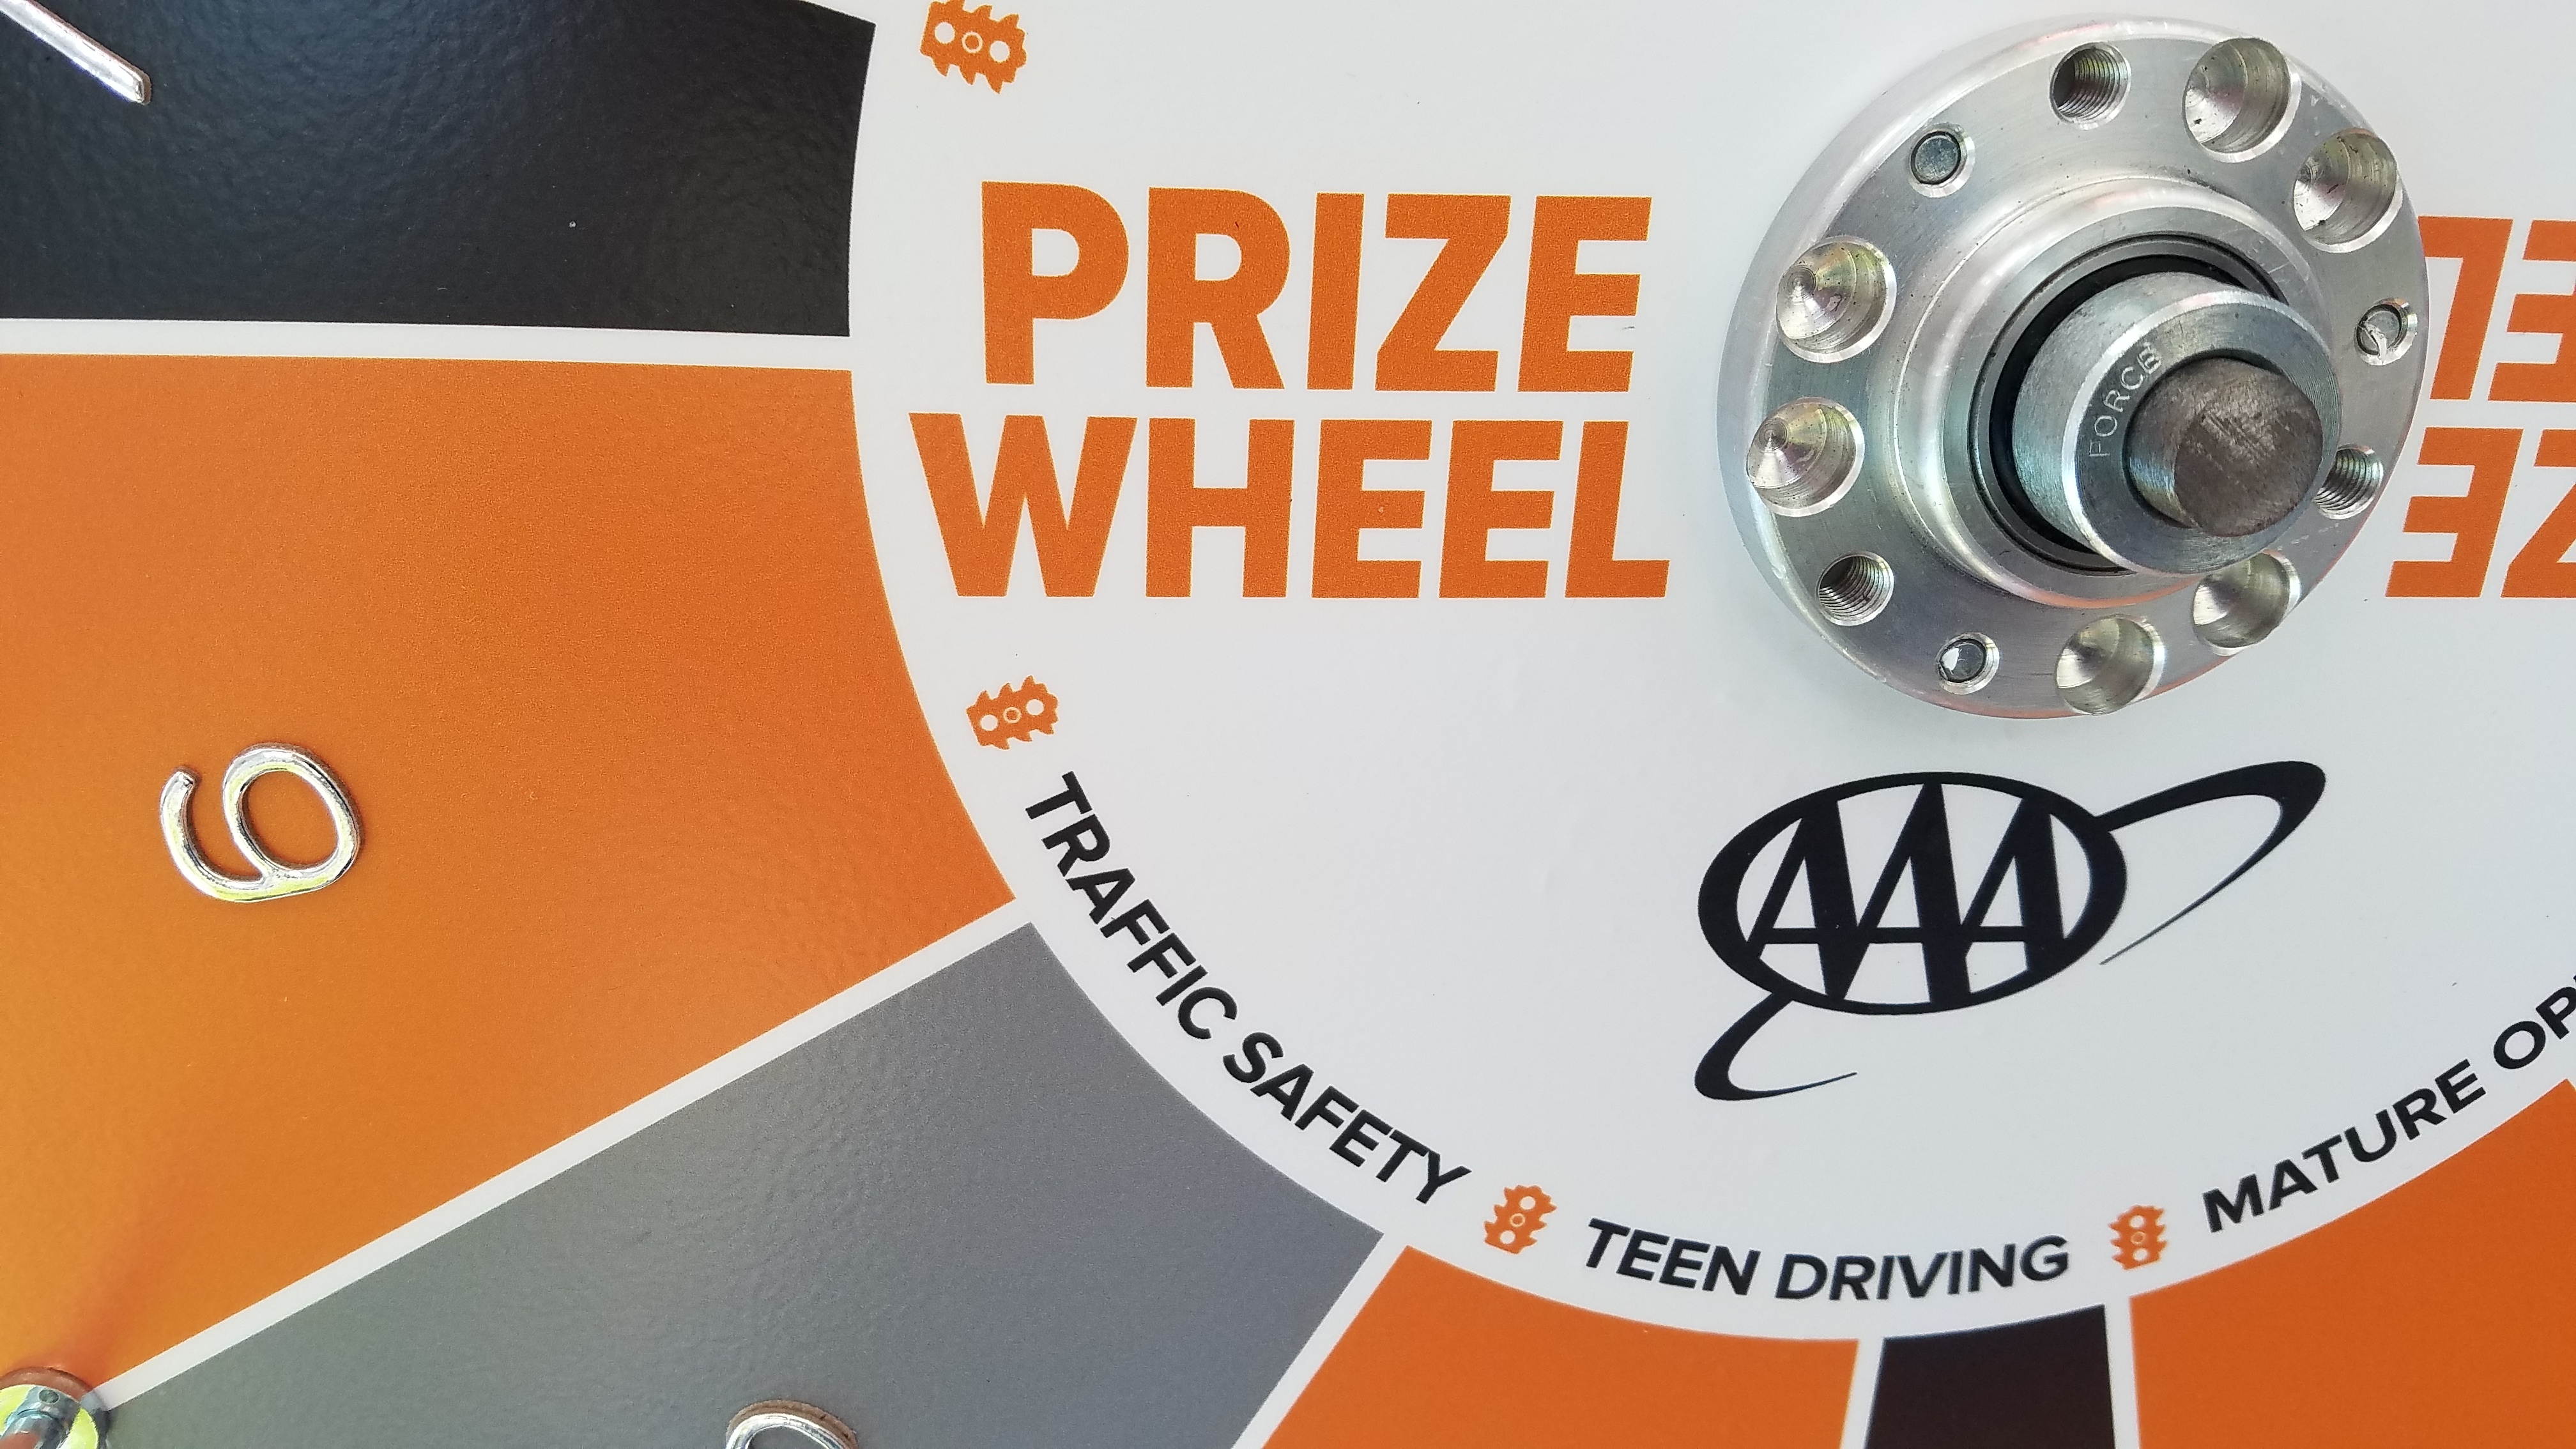 AAA Teen Driver Safety Prize Wheel Logo